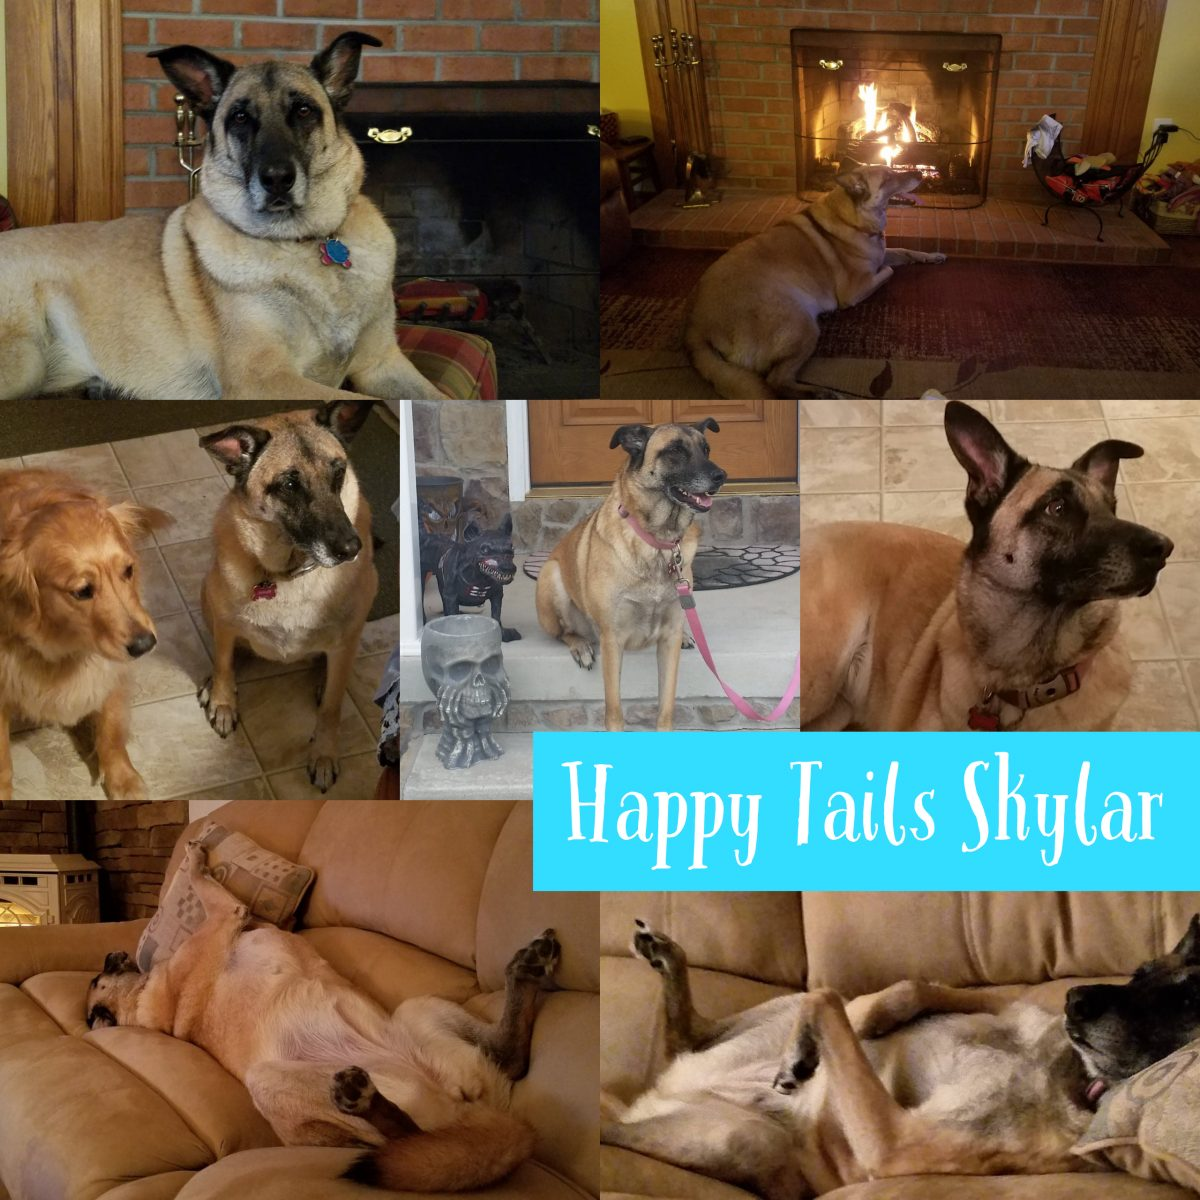 Happy Tails Skylar!